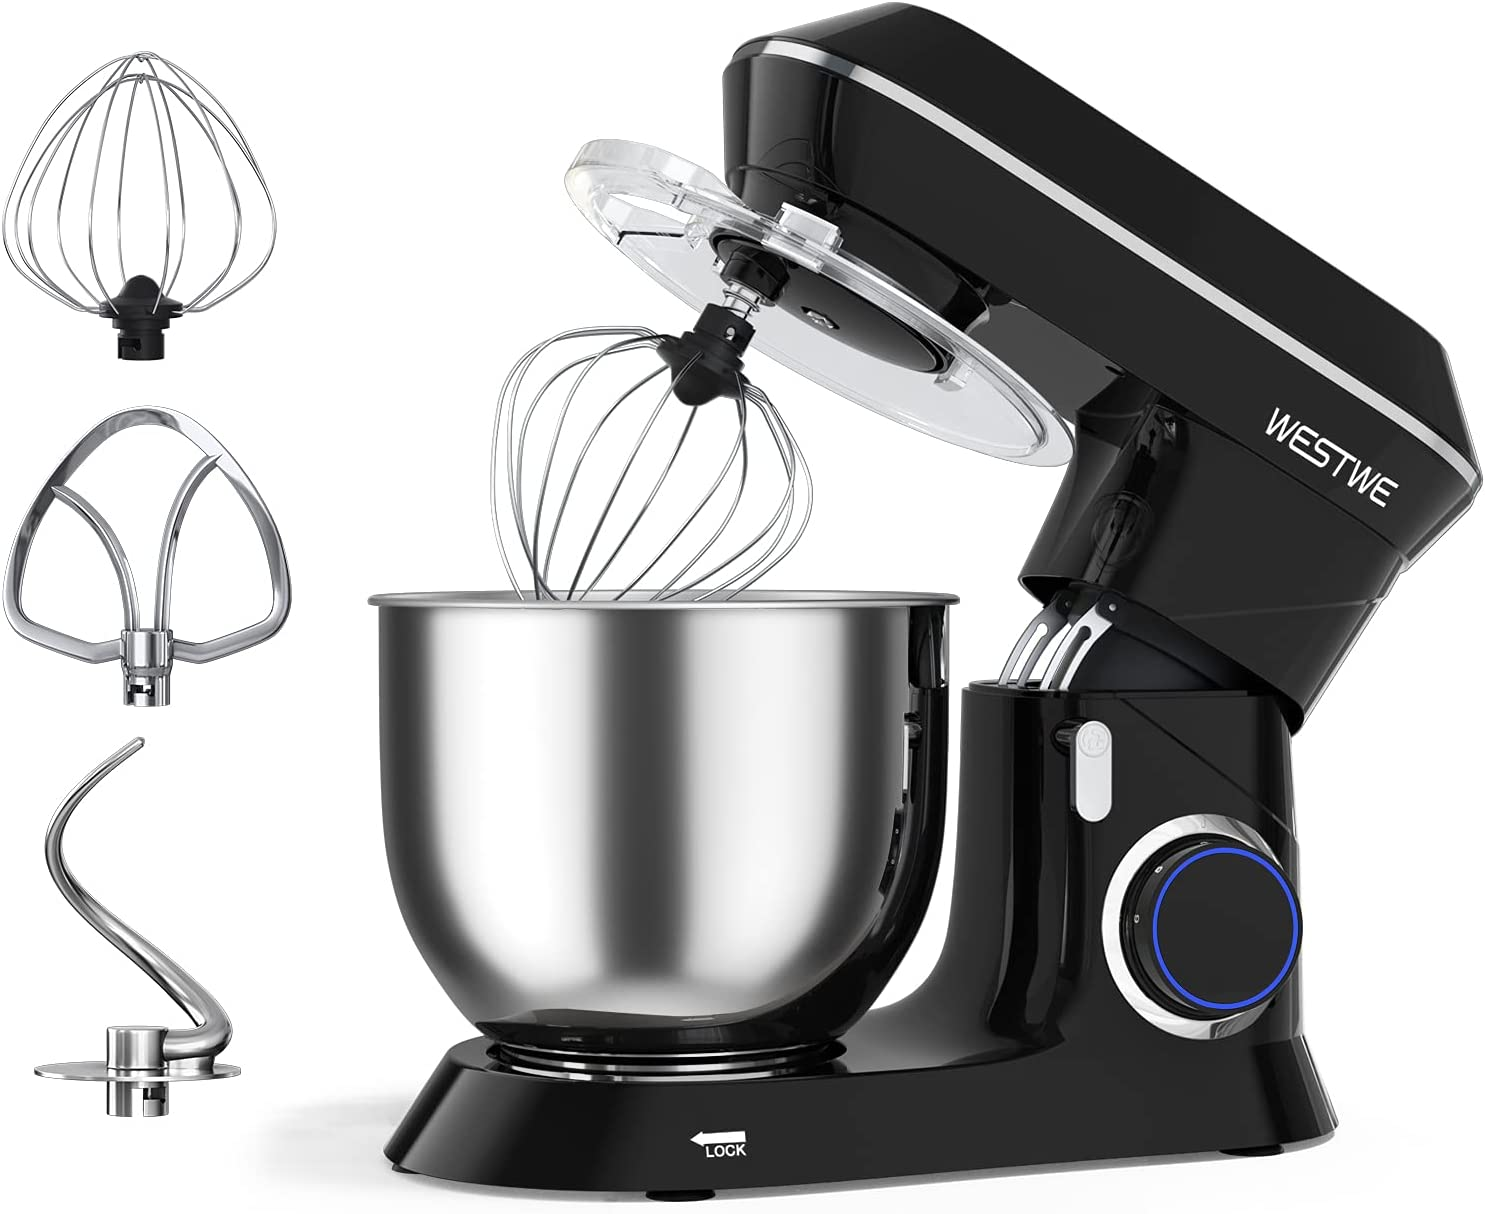 Stand Mixer, WESTWE 7Qt 660W Dough Mixer, 6+1 Speed Mixers Kitchen Electric Stand Mixer for Bread Dough, Stainless Steel Dough Hook, Mixing Beater and Whisk, Splash Guard, Egg Separator(Black, 7Qt)